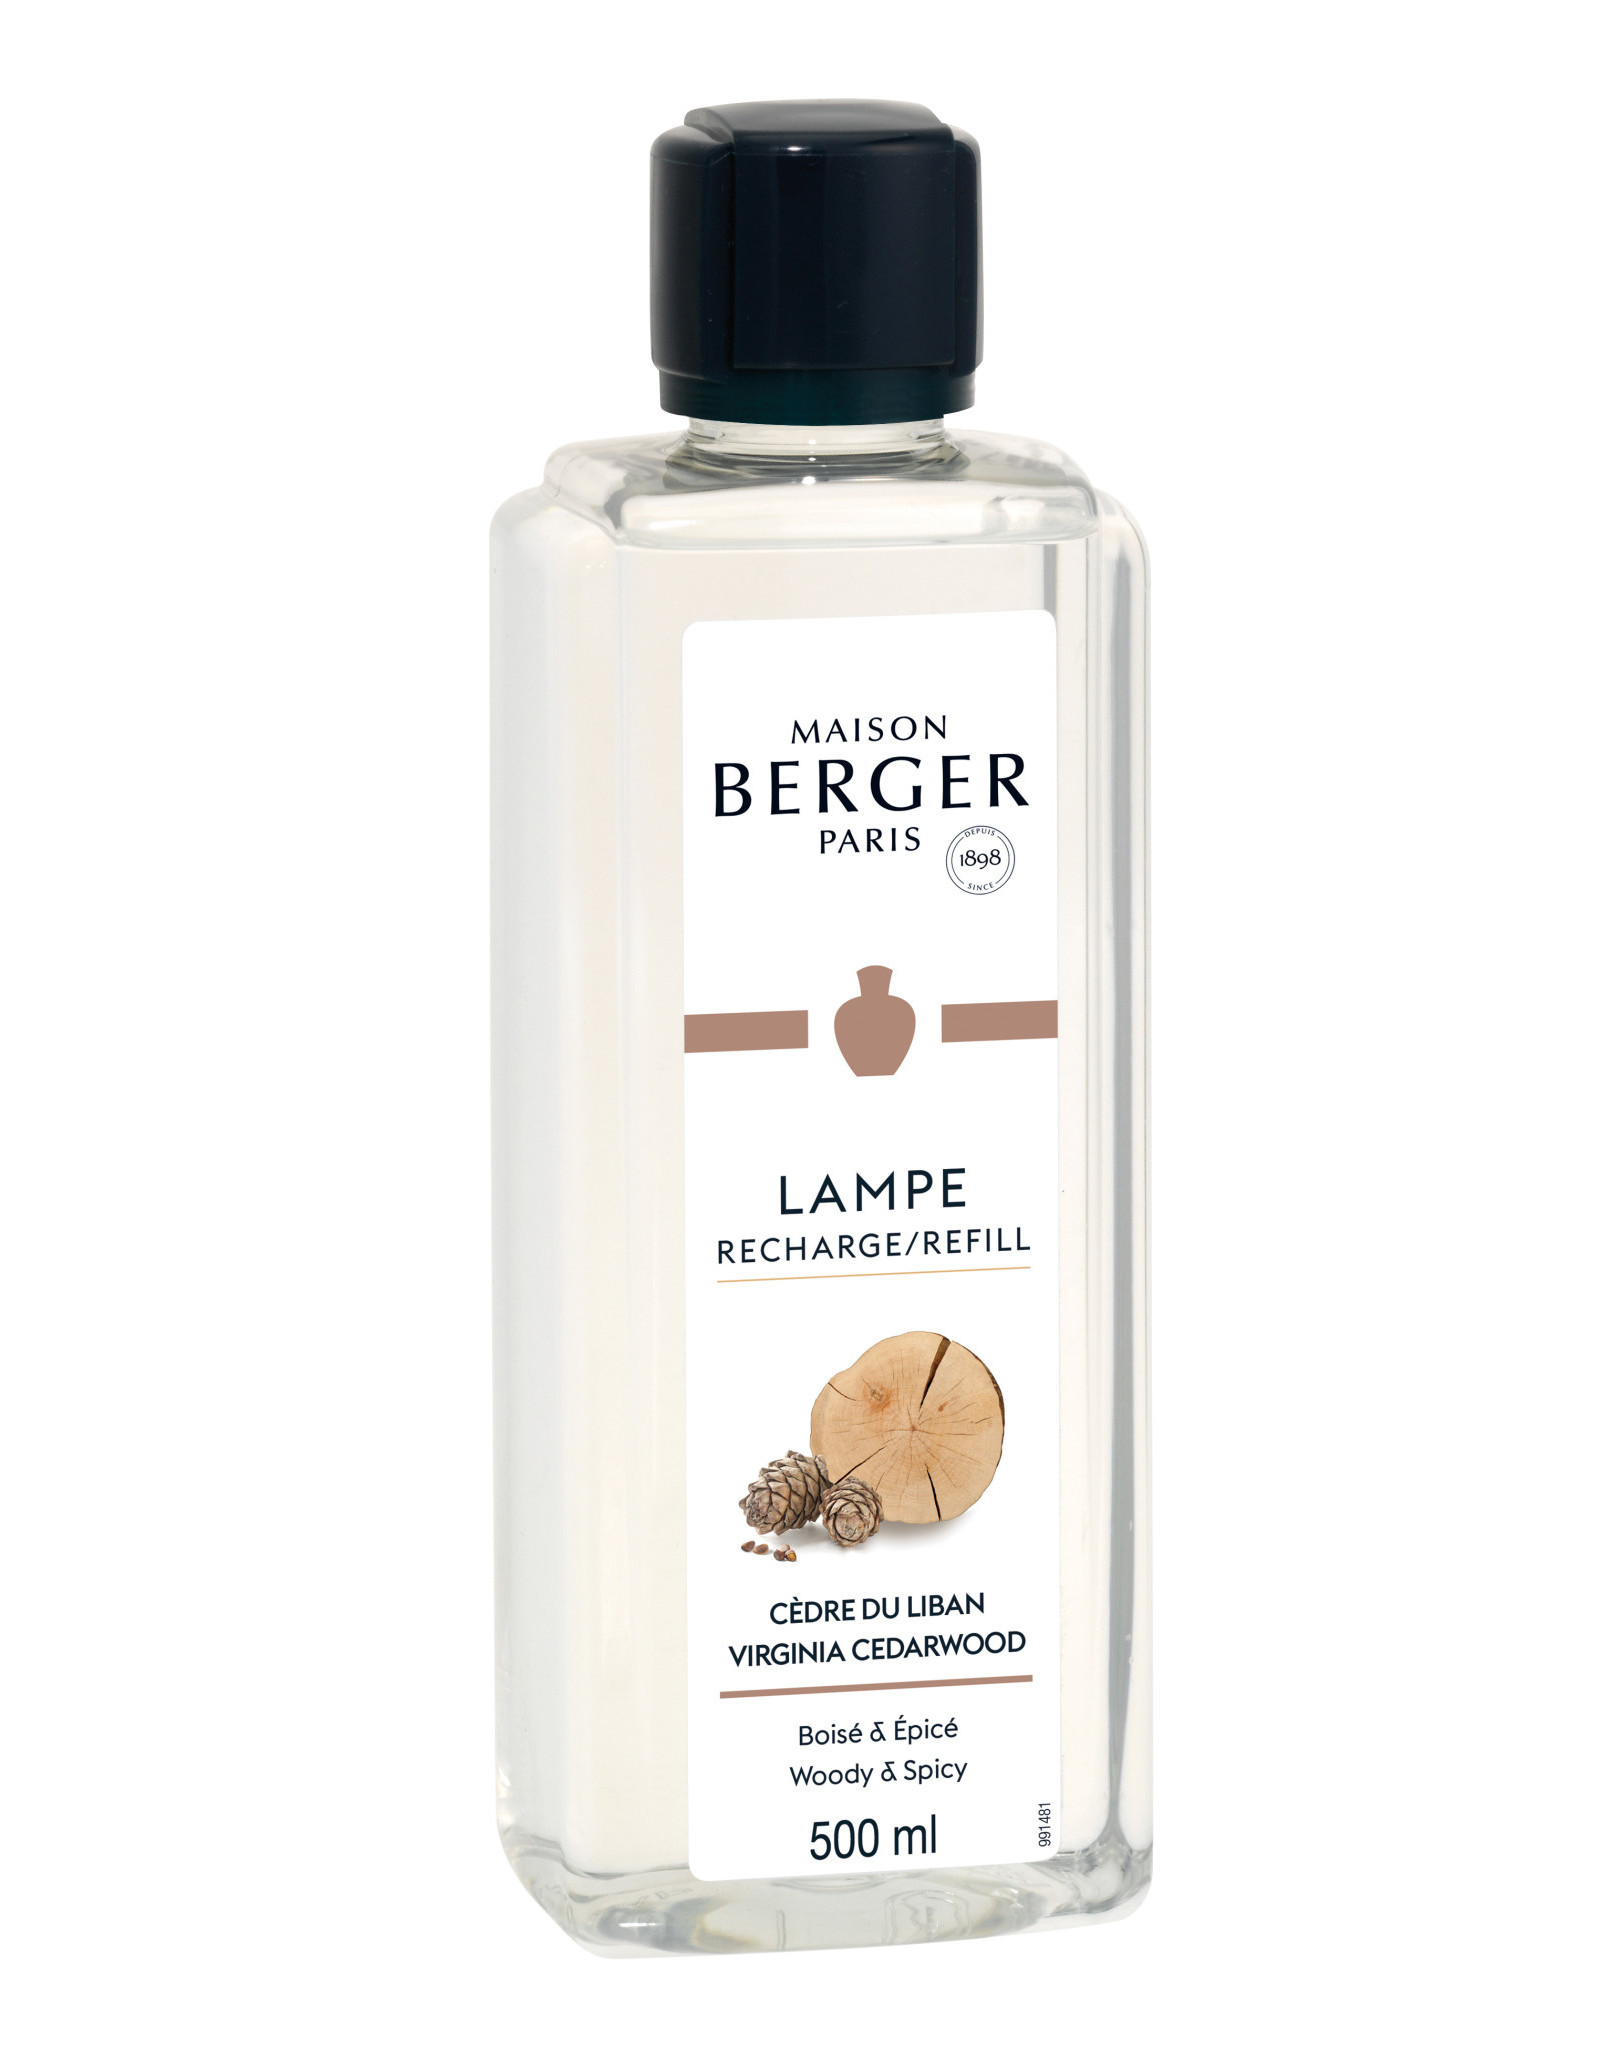 MAISON BERGER MAISON BERGER 500ML 115021 CEDERWOOD